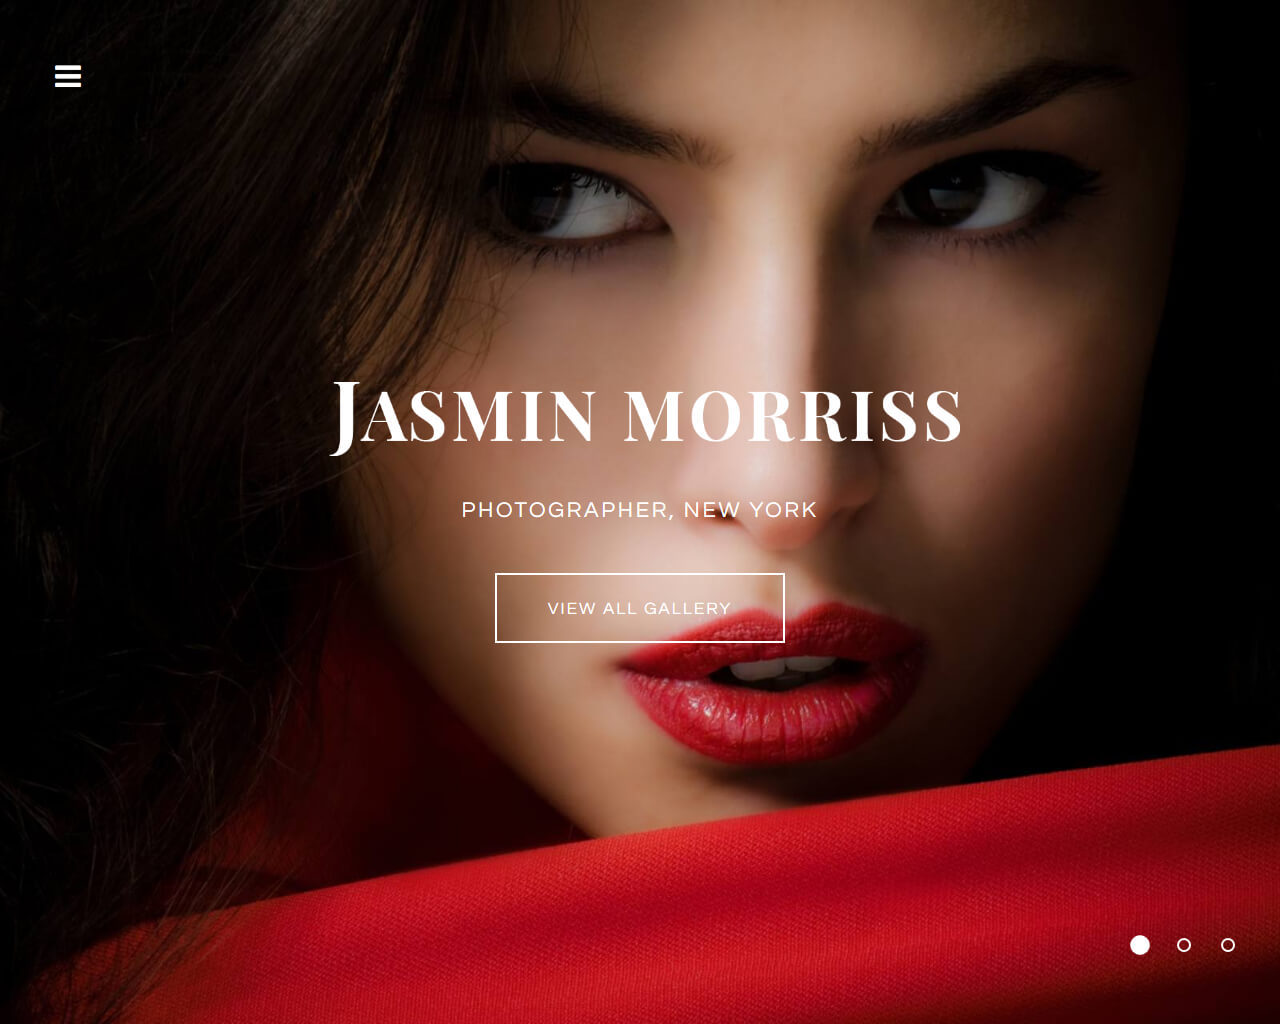 Jasmin Morris Website Template